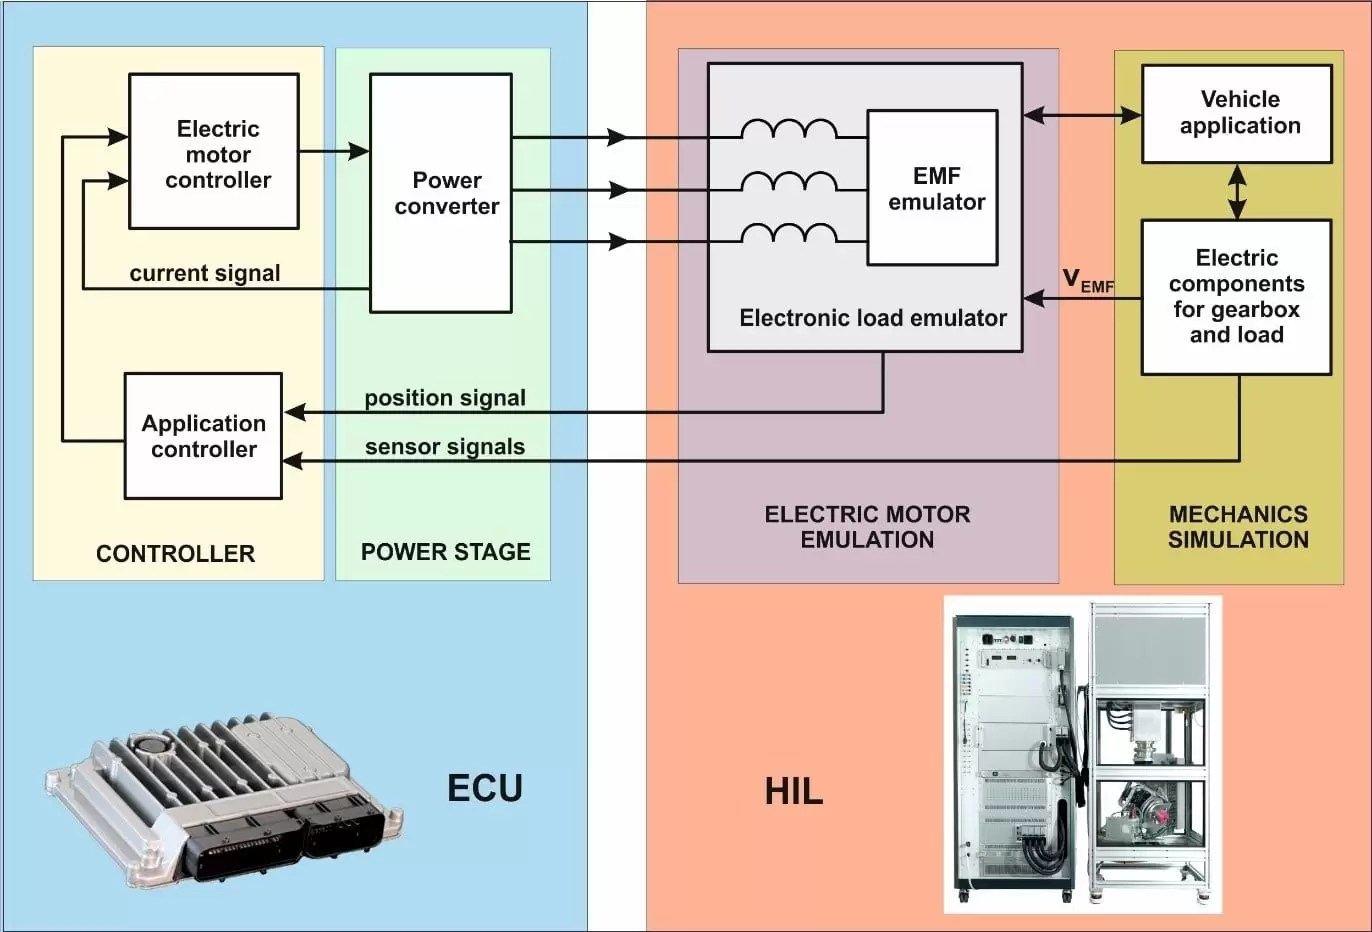 hight resolution of hil diagram for an electric vehicle ecu